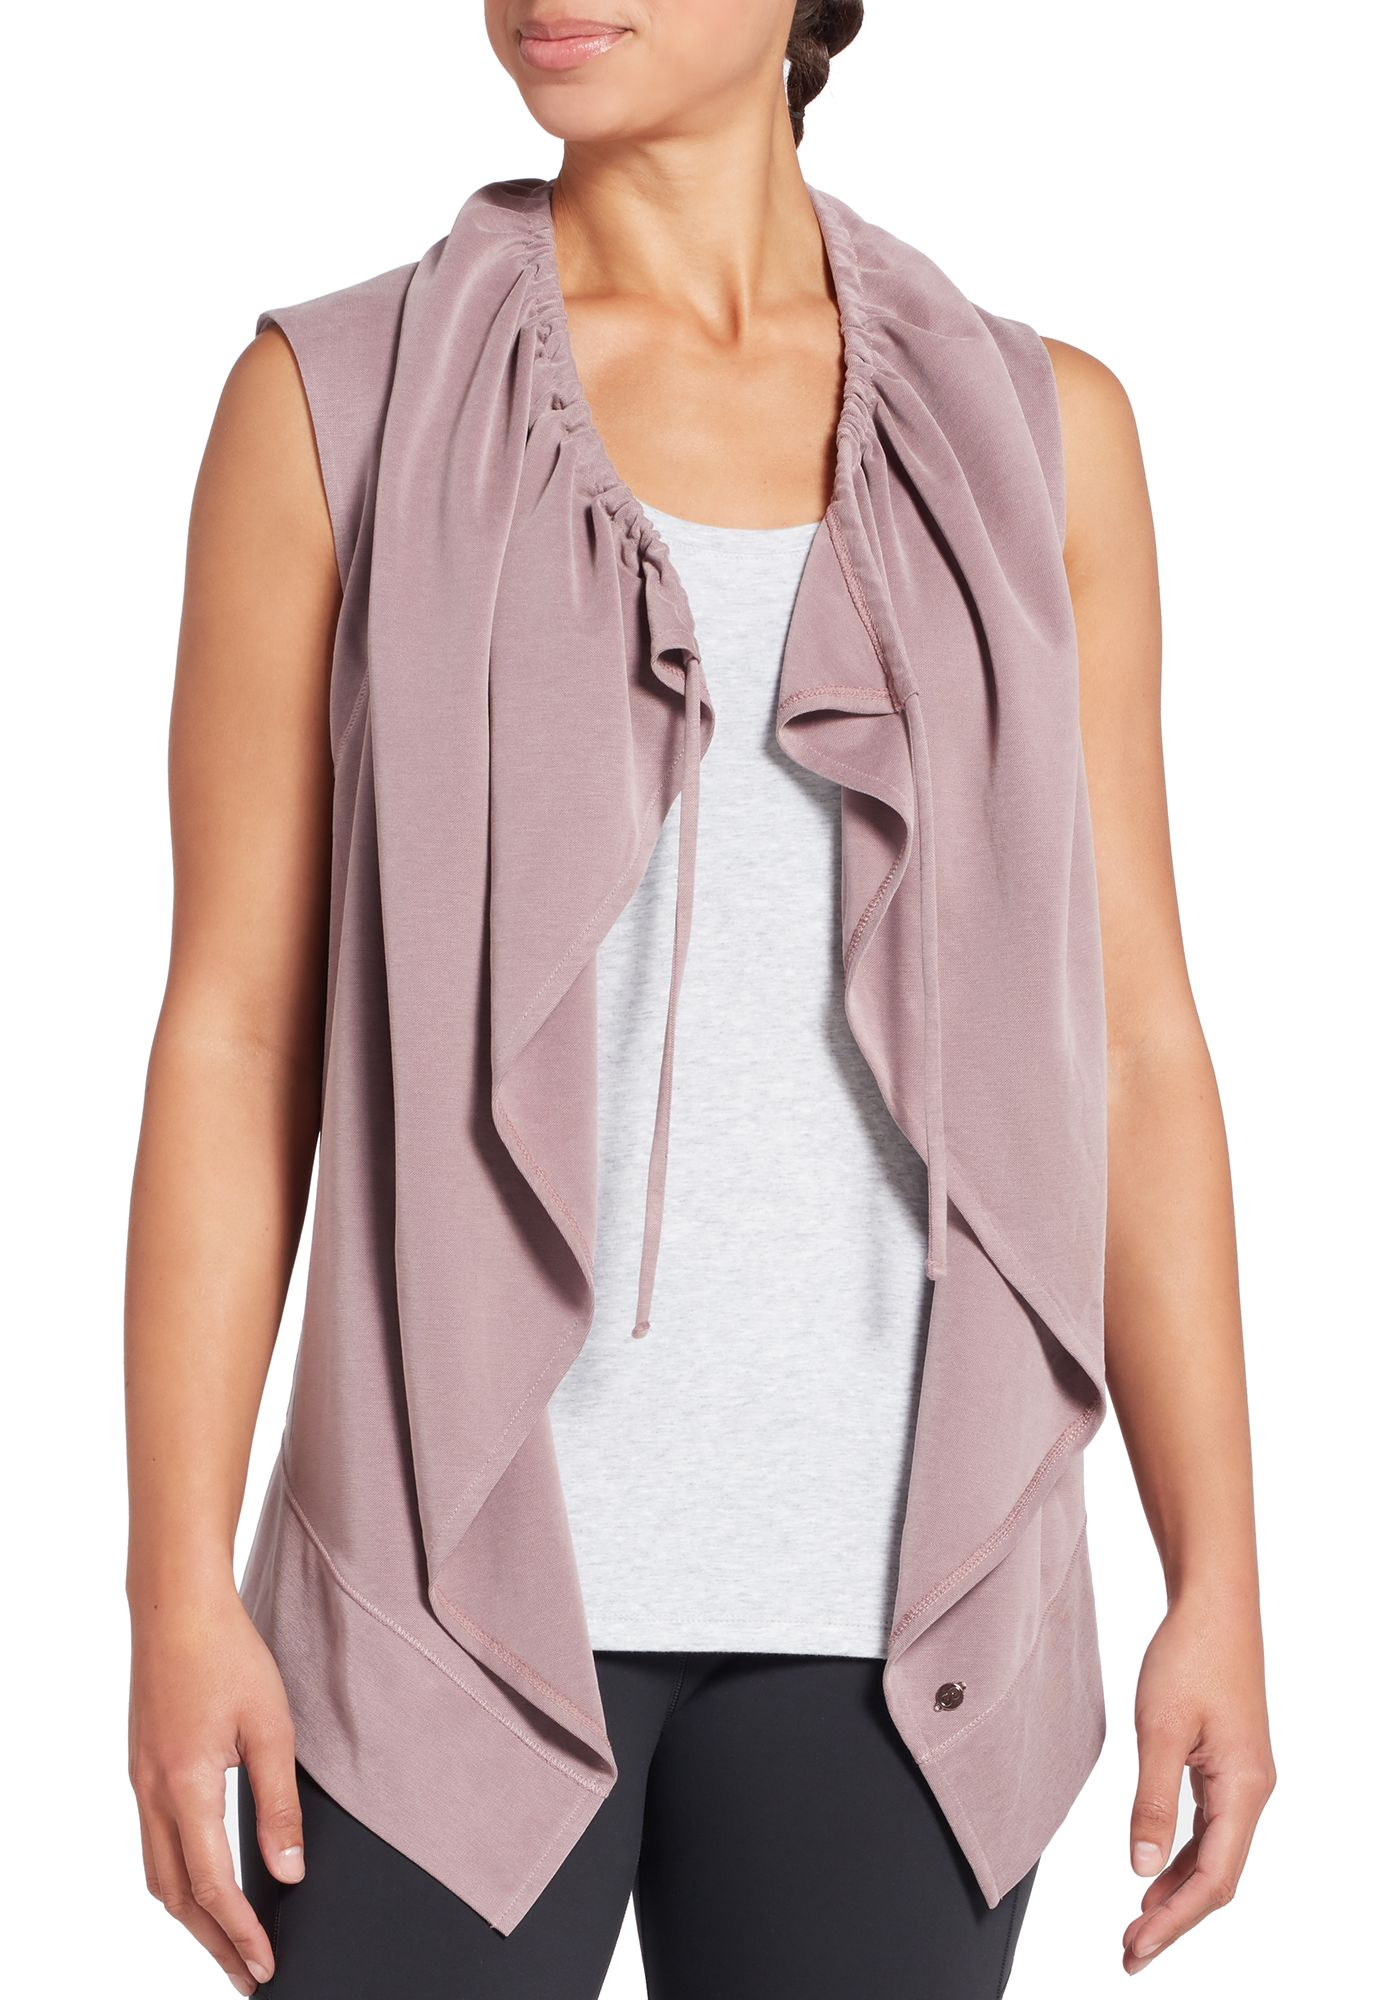 CALIA by Carrie Underwood Women's Journey Vest